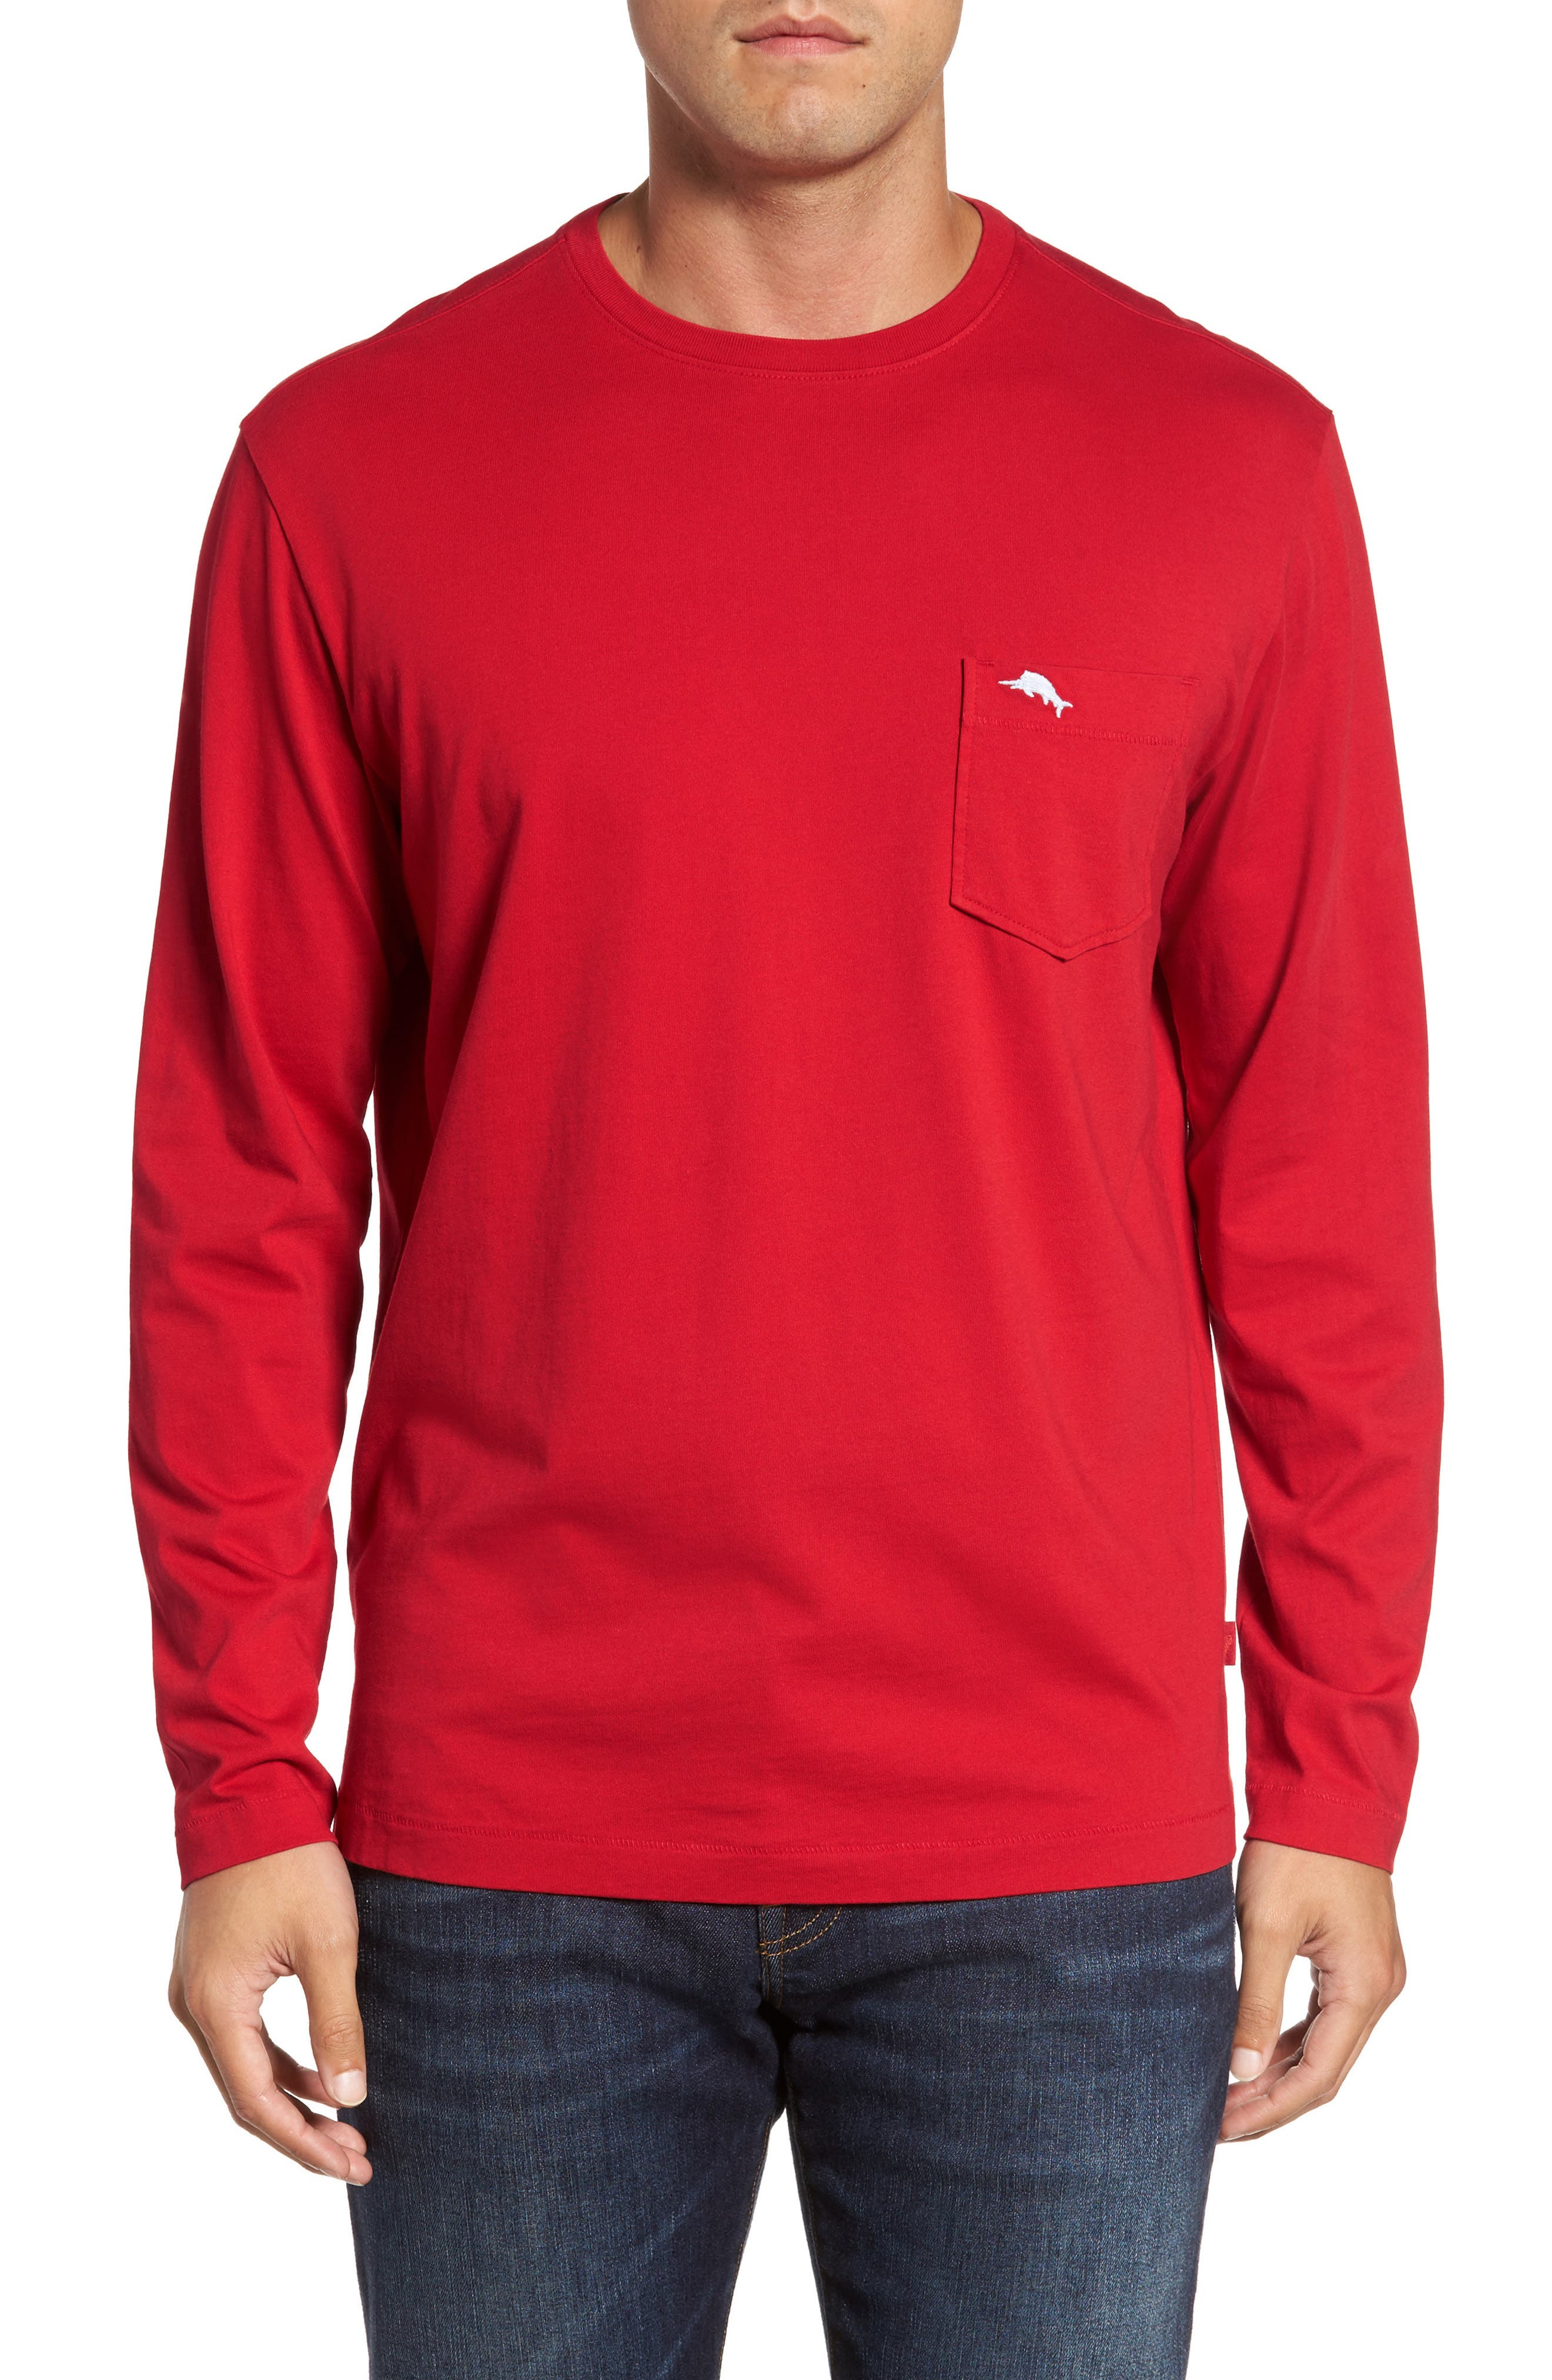 Bali Skyline Long Sleeve Pima Cotton T-Shirt,                         Main,                         color, Regal Red